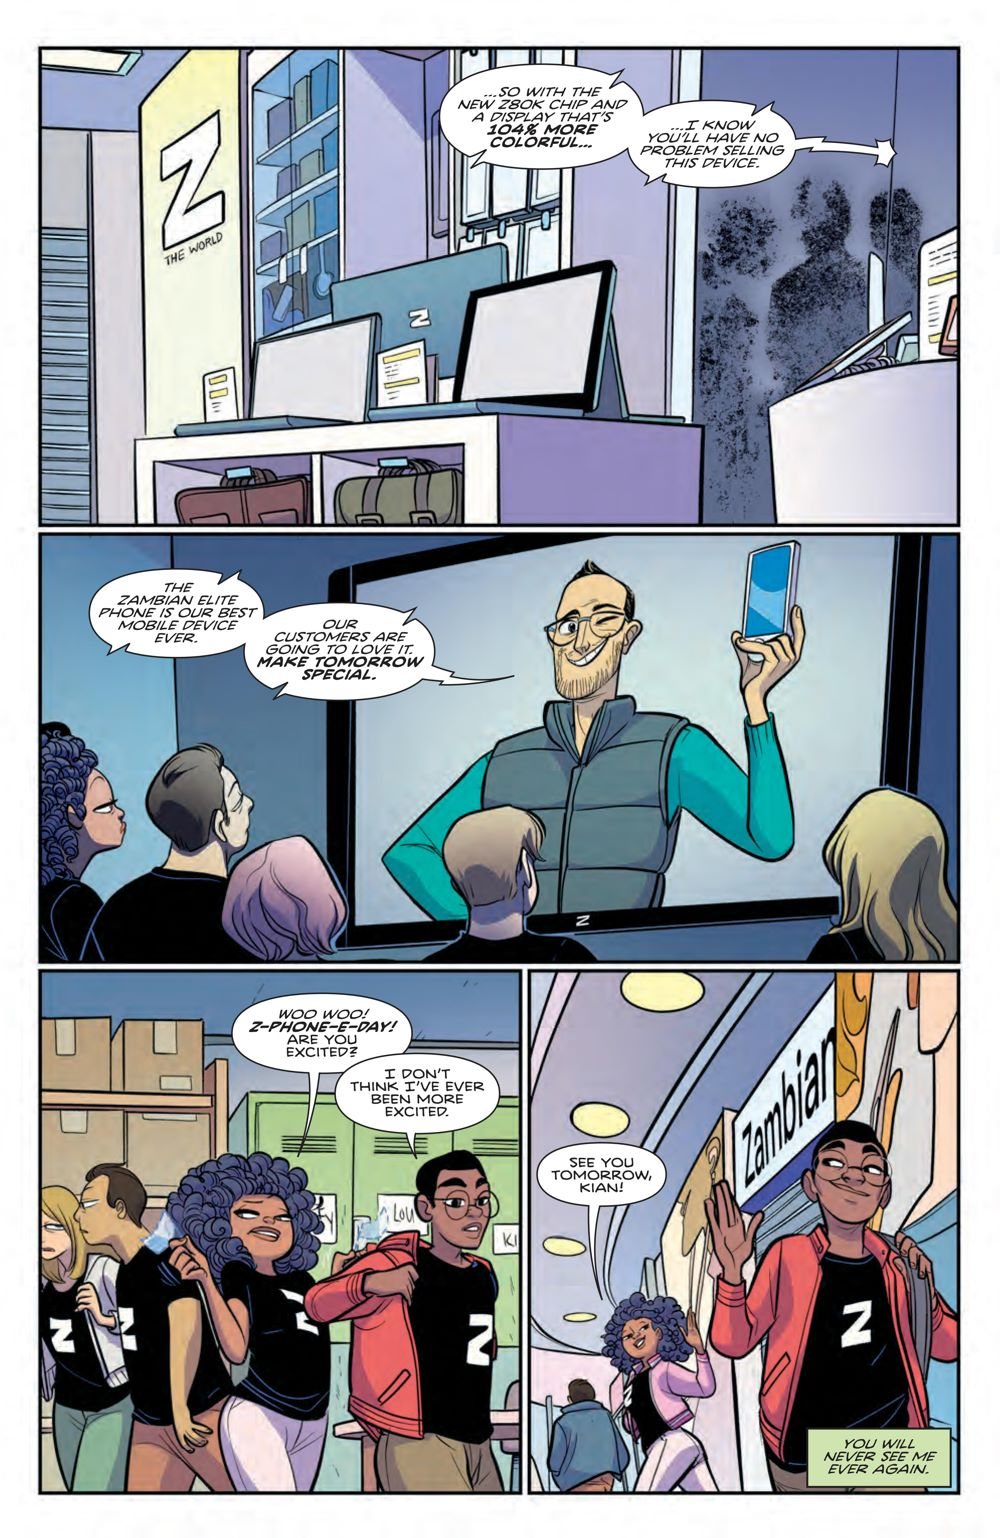 WickedThings_004_PRESS_3 ComicList Previews: WICKED THINGS #4